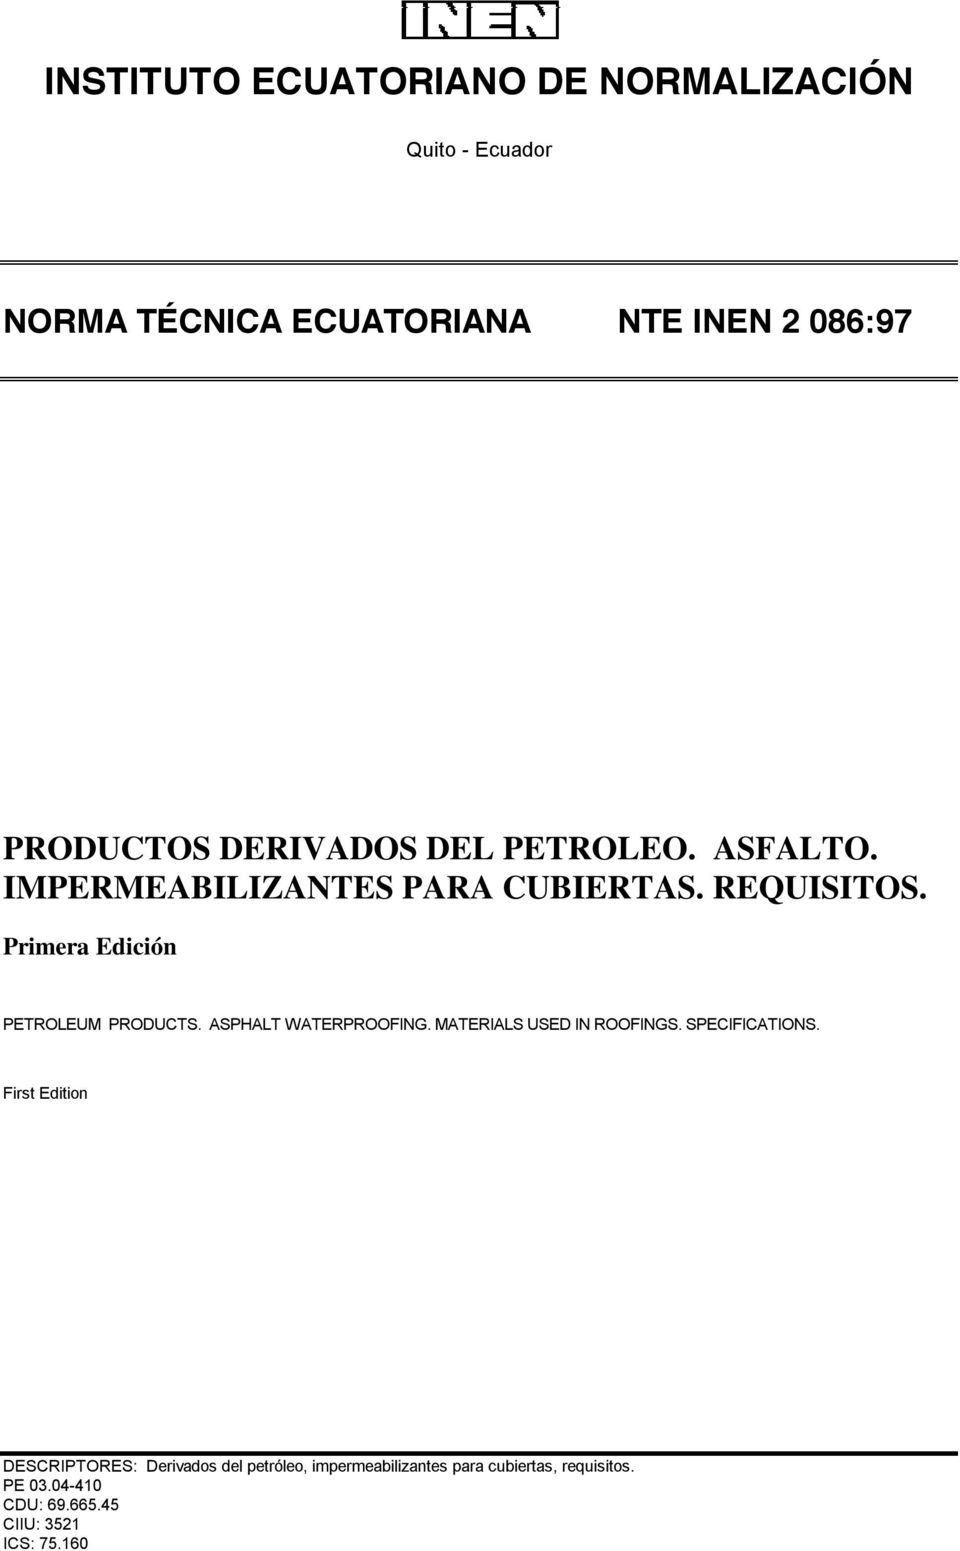 Primera Edición PETROLEUM PRODUCTS. ASPHALT WATERPROOFING. MATERIALS USED IN ROOFINGS. SPECIFICATIONS.